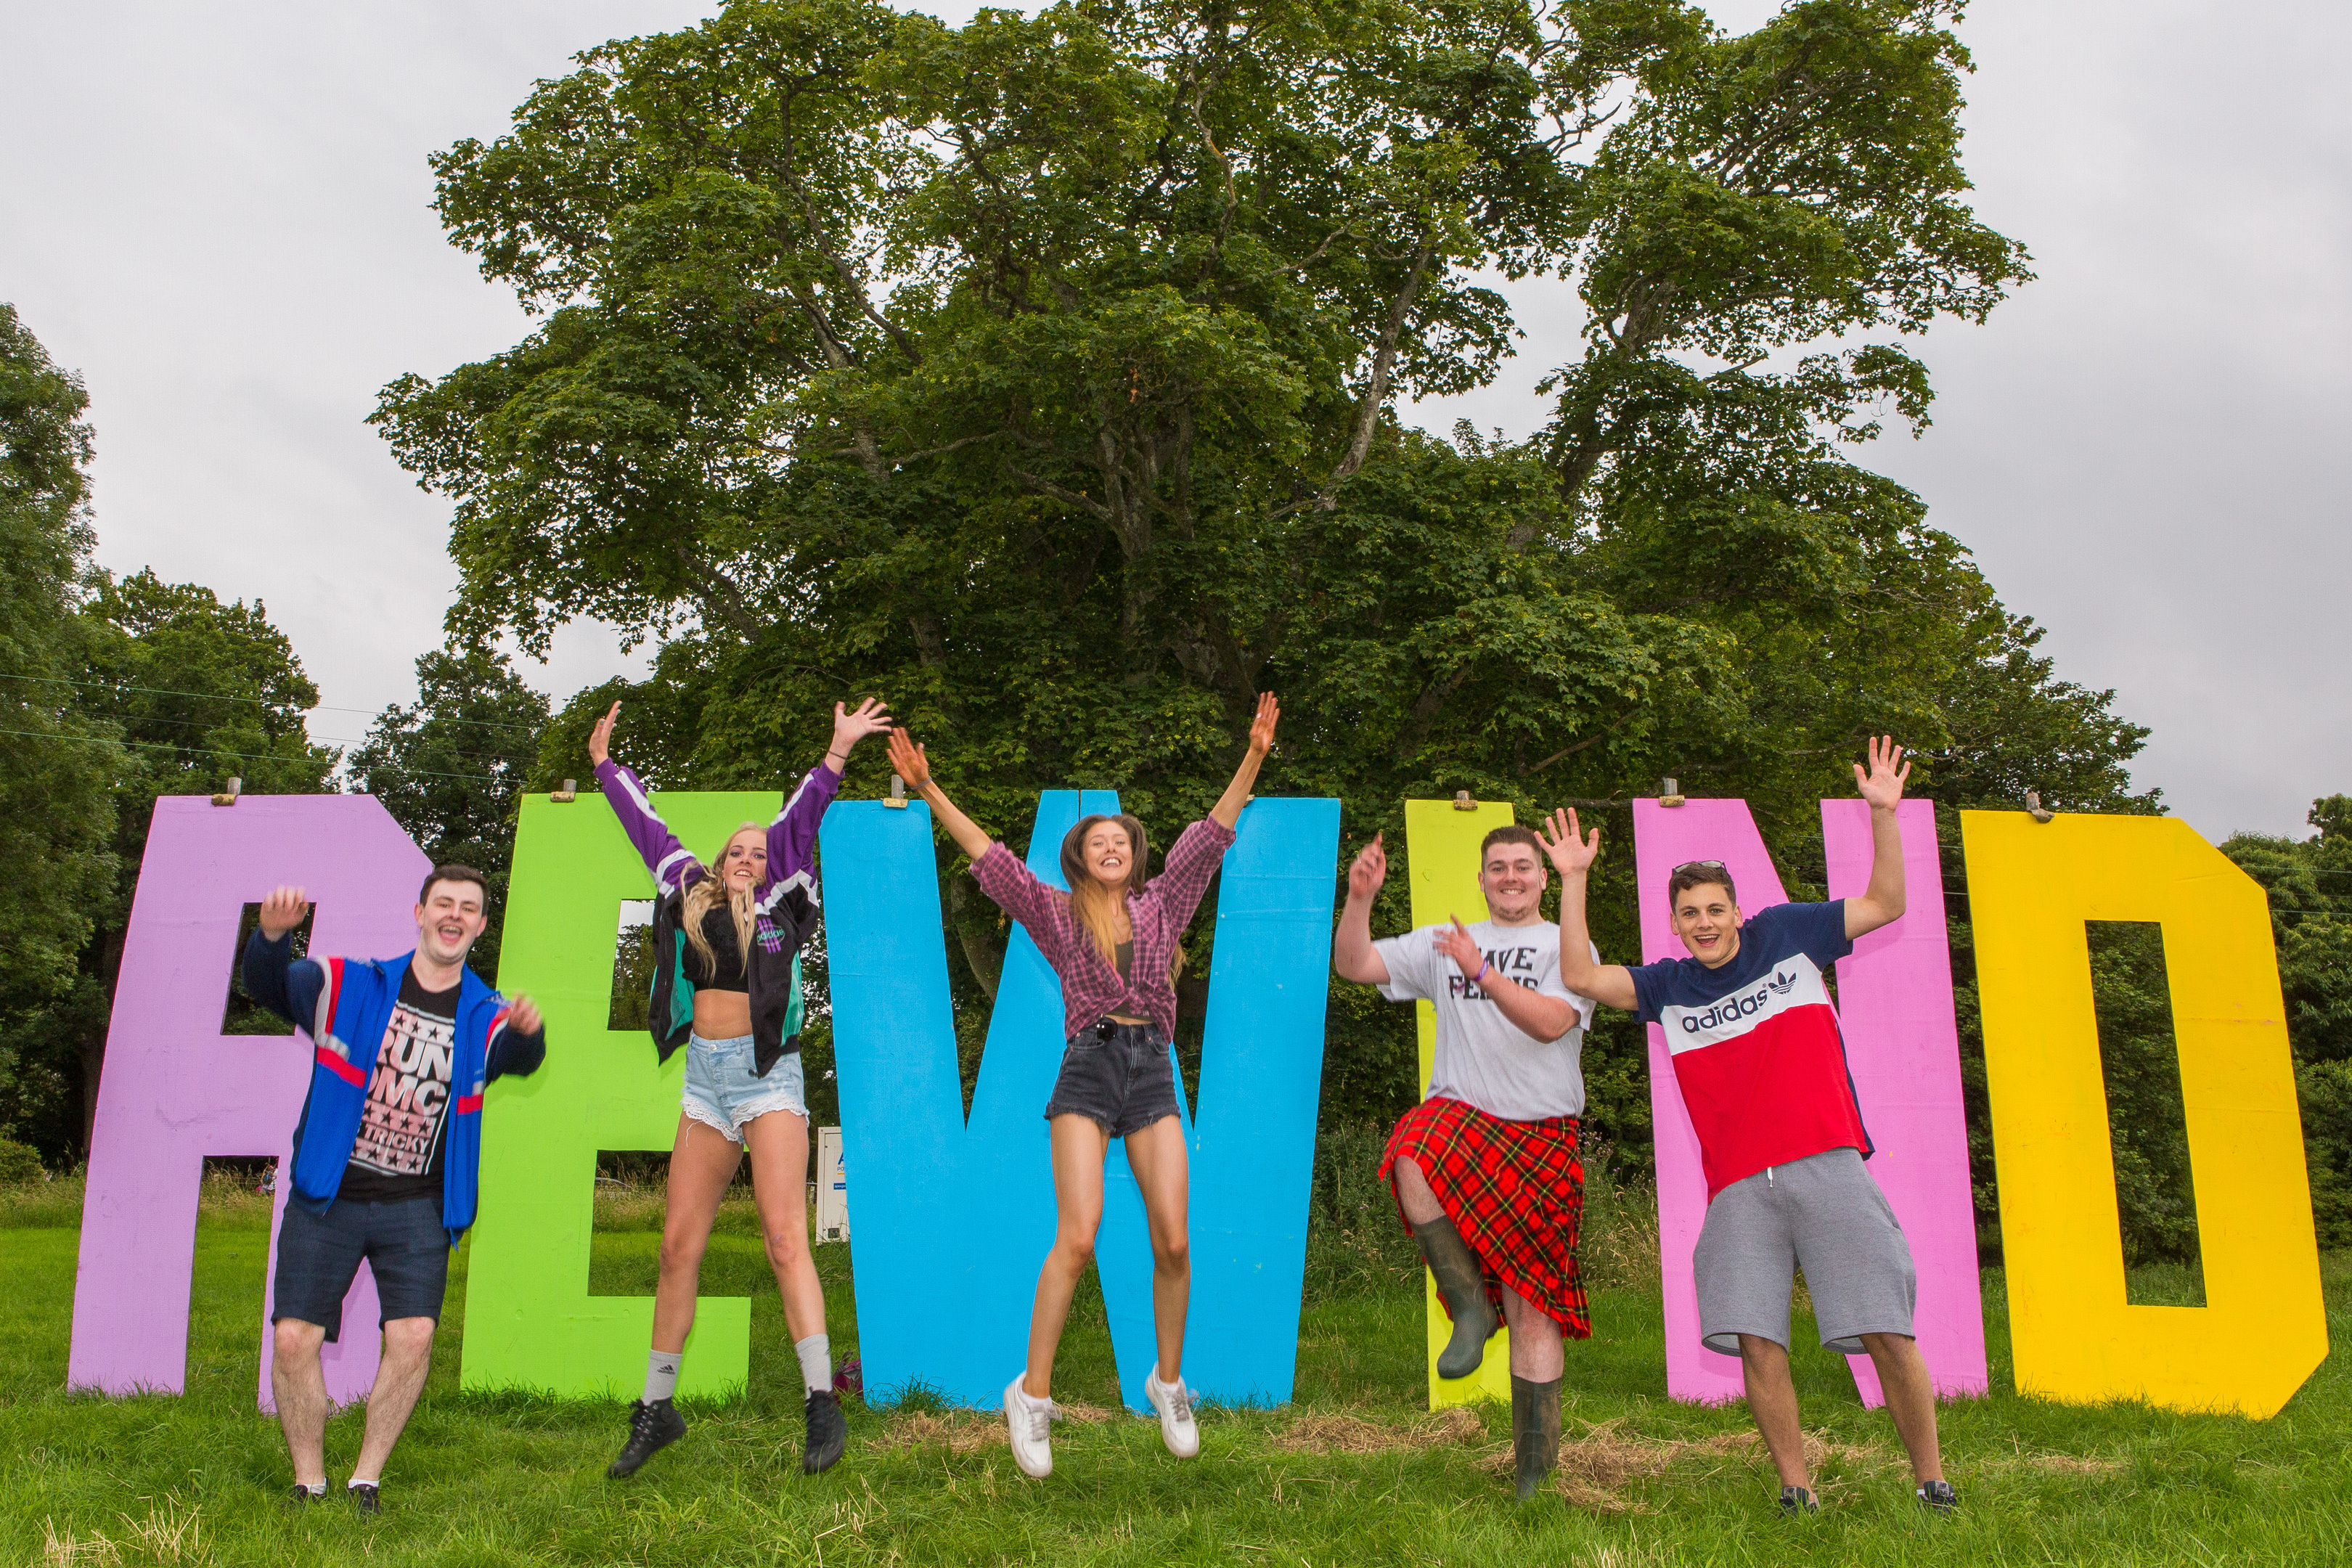 Jumping with excitement are Kenneth Pattendon (18), Conor Smith (20), Megan Palmer (21), Alex Maclean (20) and Thomas Morrow (19) from Scone